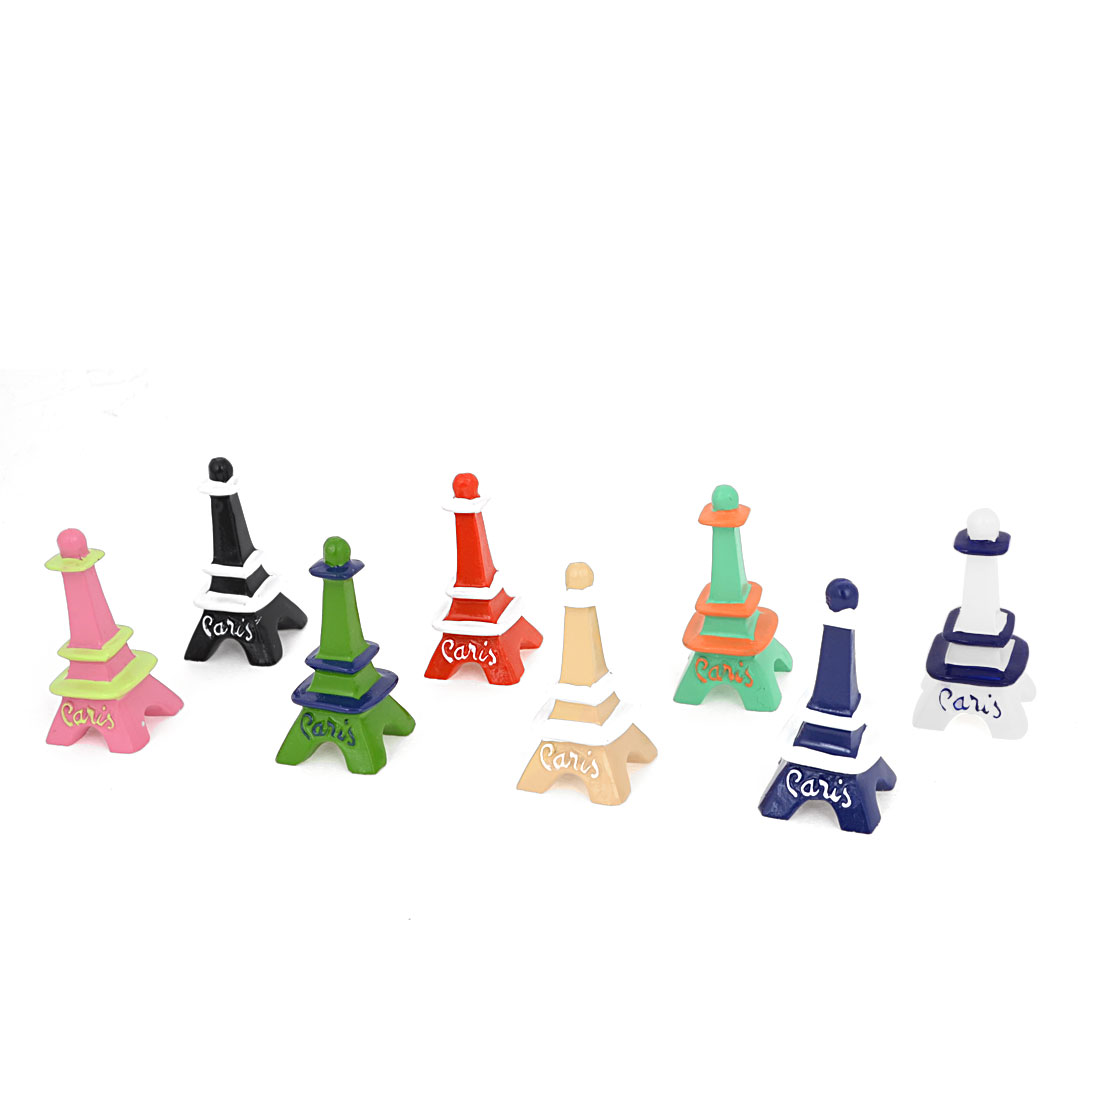 Festival Decor Multicolor Resin Handcraft Eiffel Tower 5.7cm High 8 Pieces